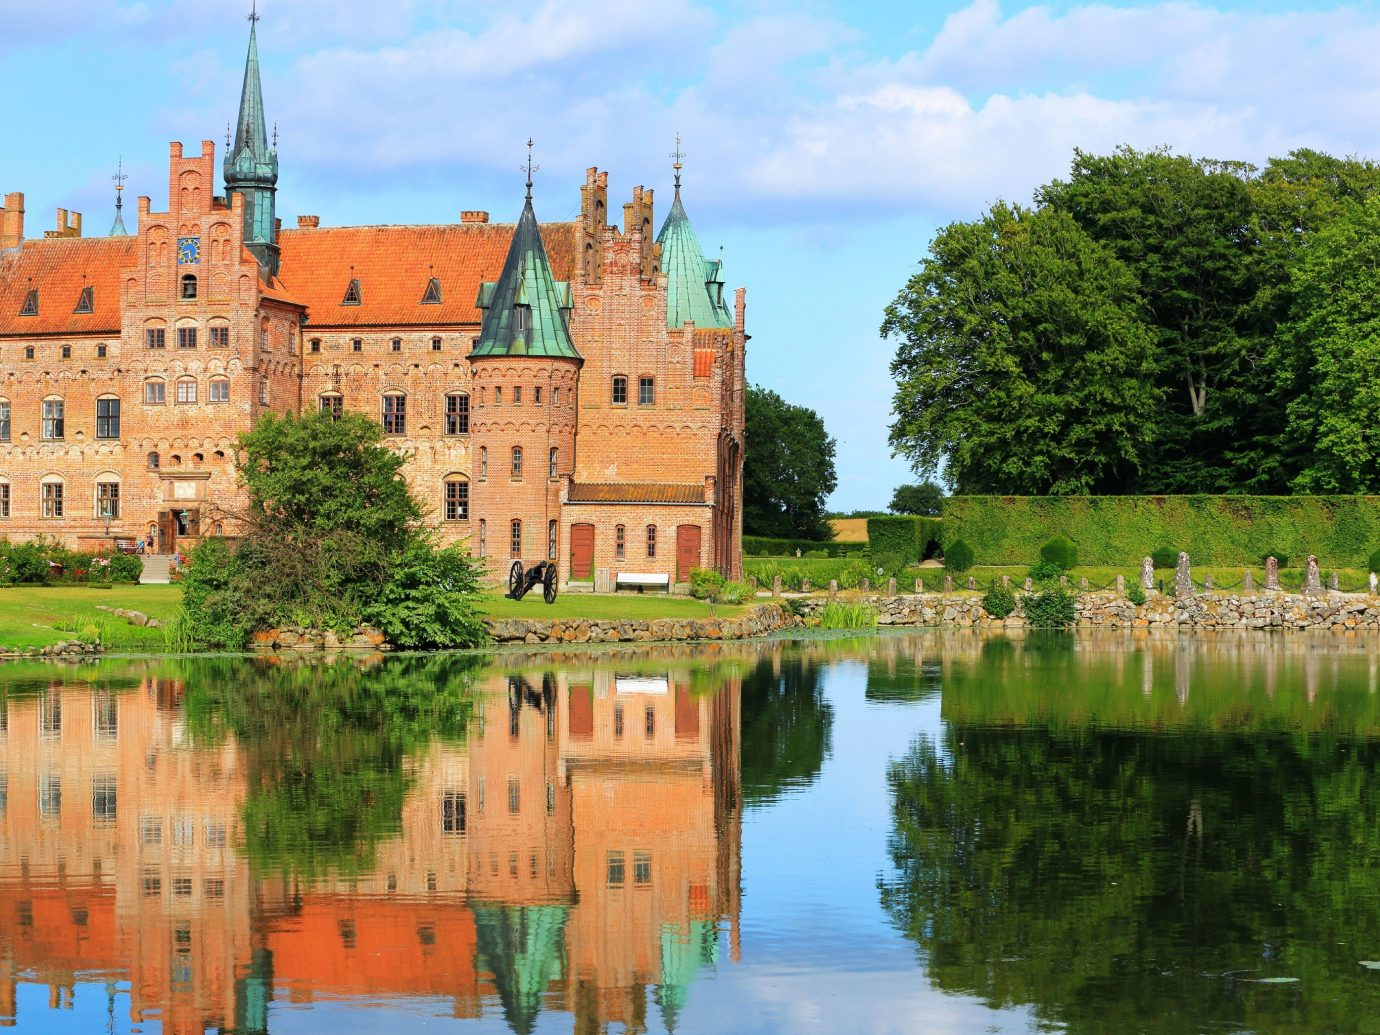 Travel Tips tree sky grass water outdoor castle building water castle château River reflection moat estate waterway stately home old palace surrounded